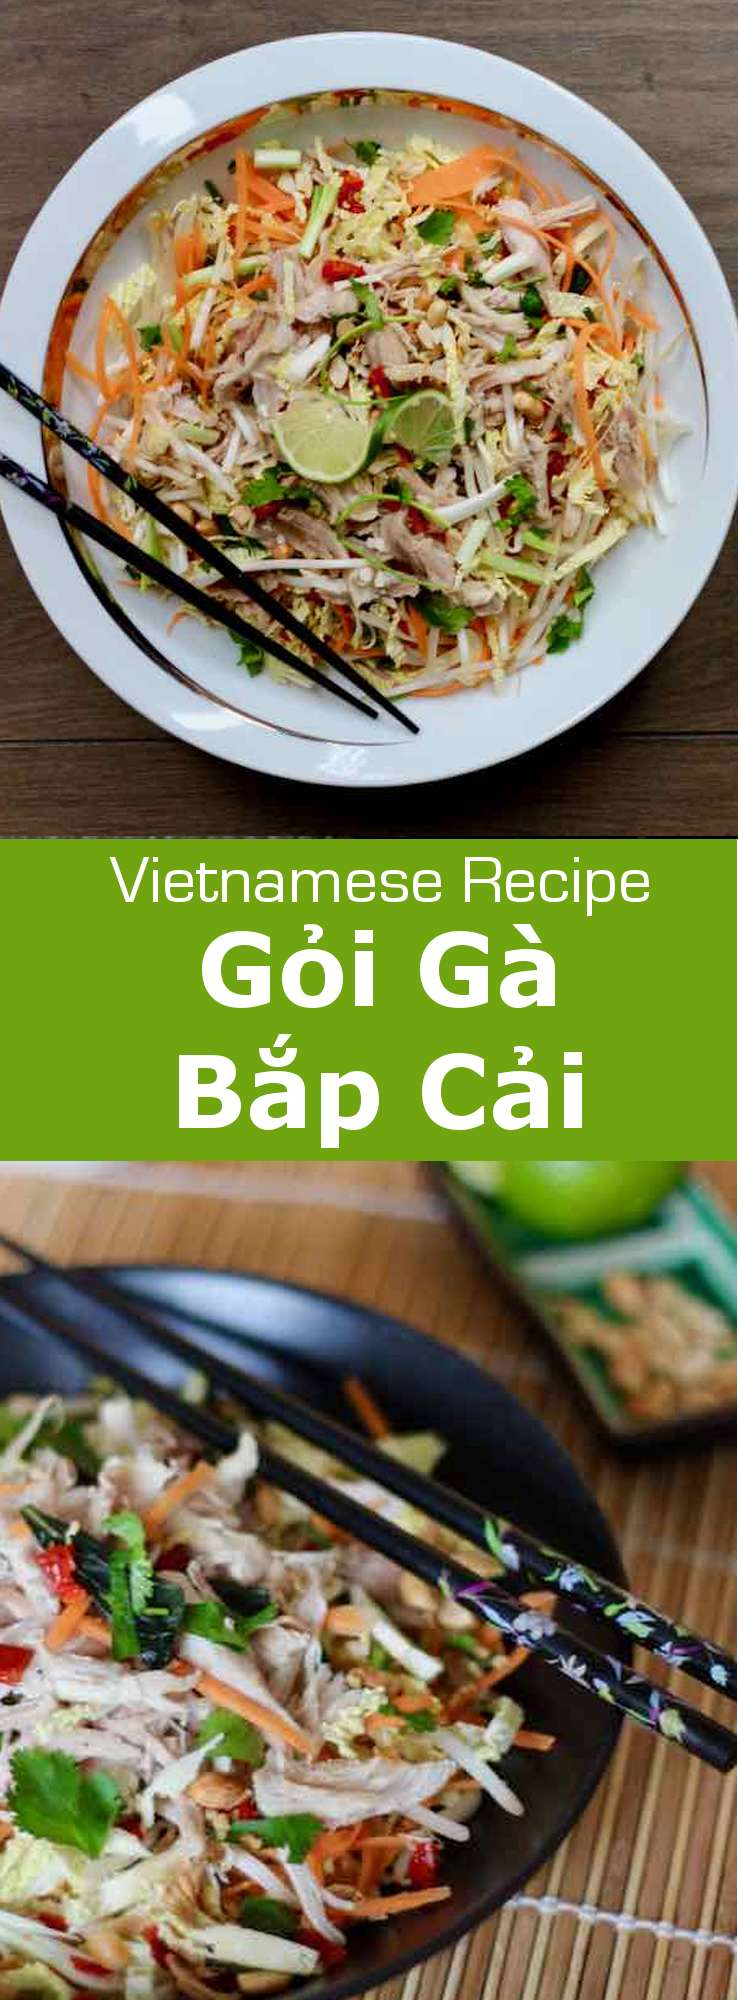 Gỏi gà bắp cải is a traditional Vietnamese salad with chicken and cabbage, that is deliciously scented with lime and rau răm. #Vietnam #VietnameseCuisine #VietnameseFood #VietnameseRecipe #AsianCuisine #AsianRecipe #AsianFood #WorldCuisine #196flavors